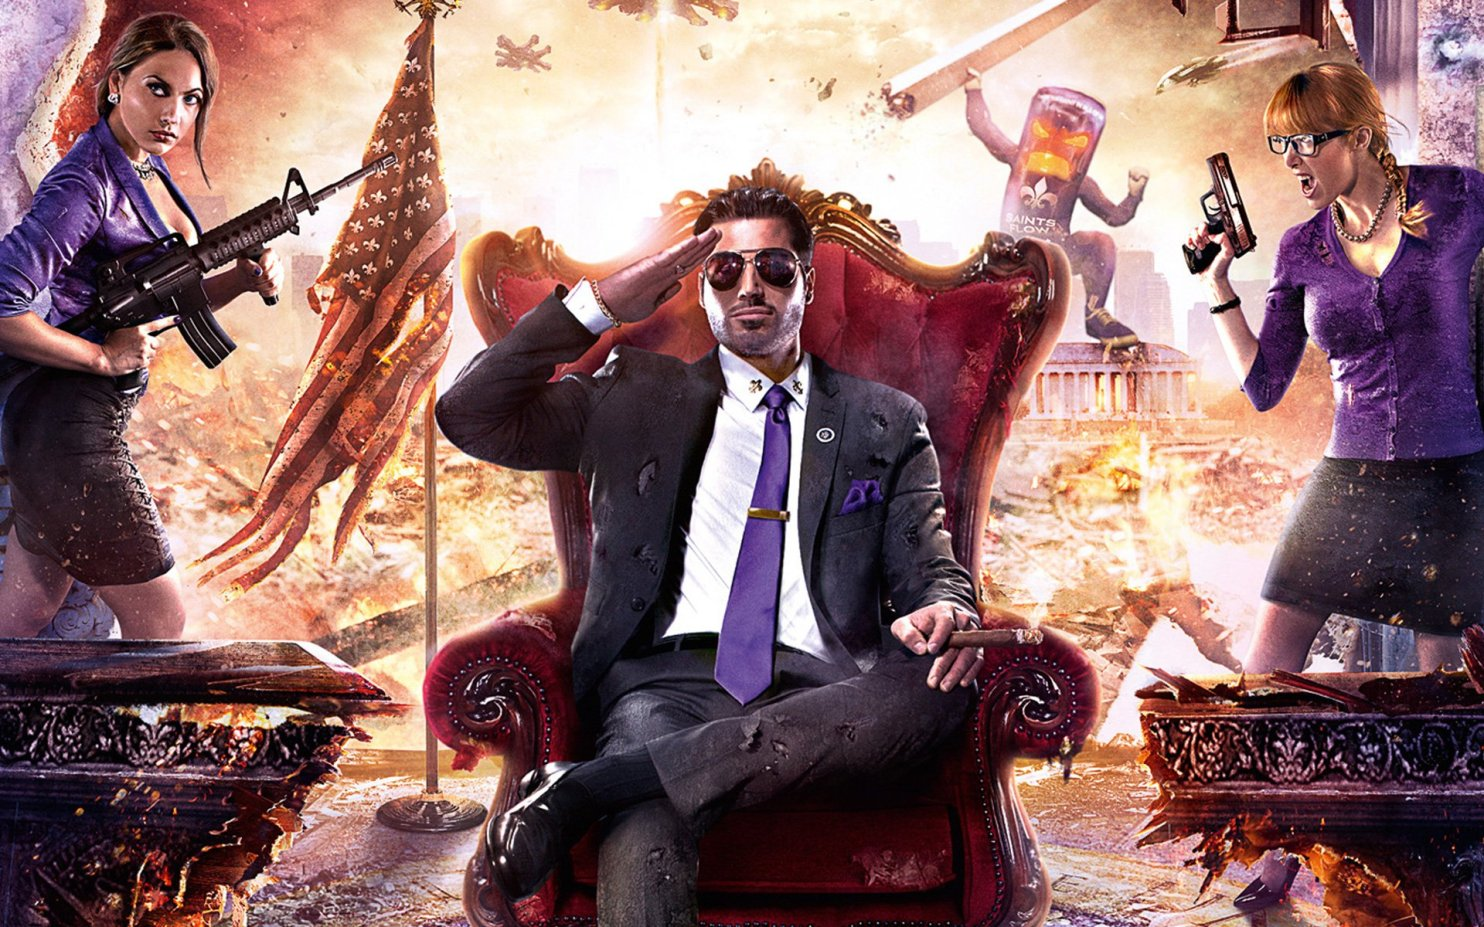 geek contest Saints Row IV wallpaper my geek actu.jpg